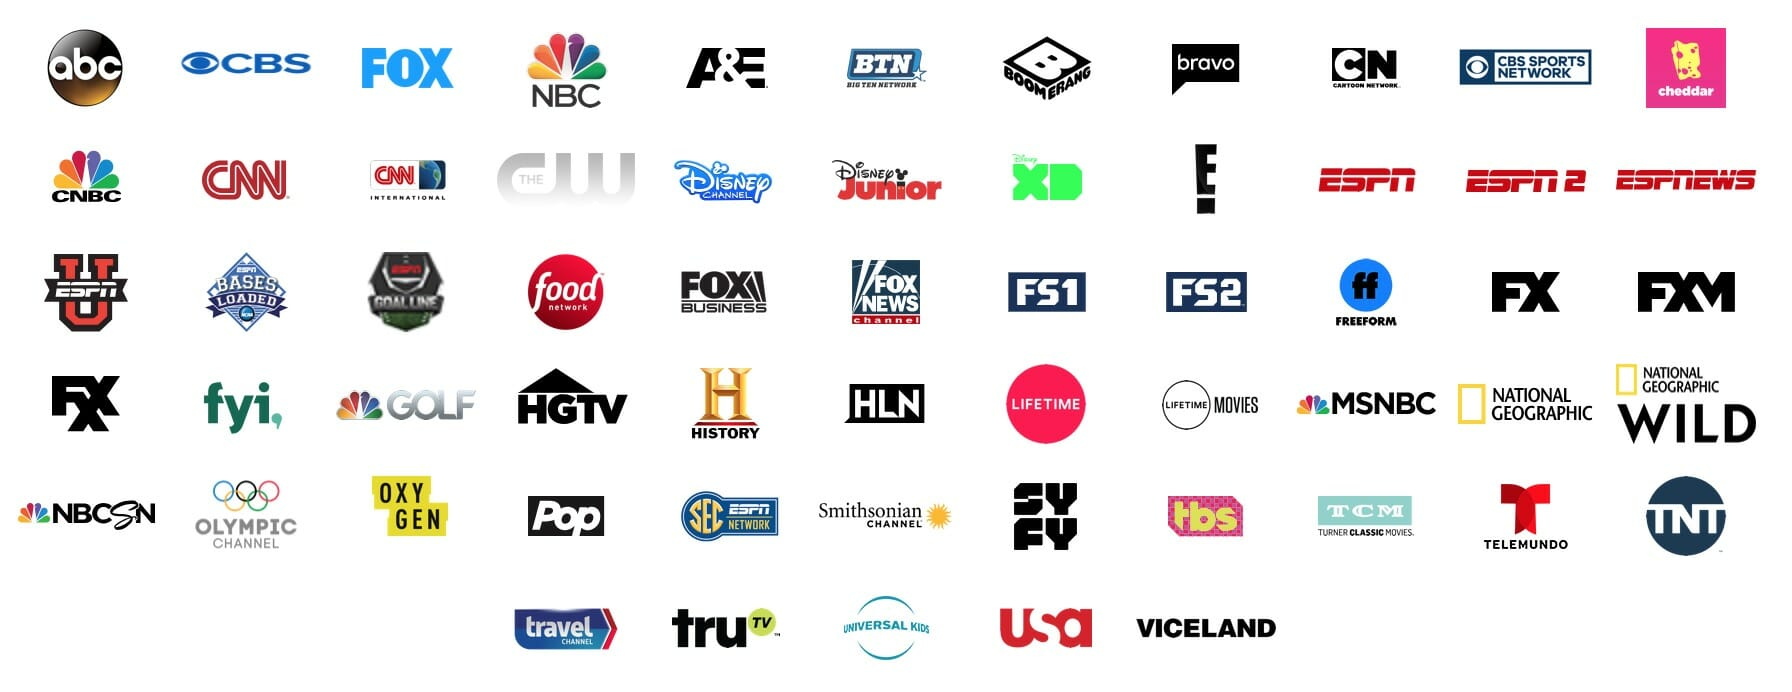 fs1 fs2 live stream hulu live tv channels